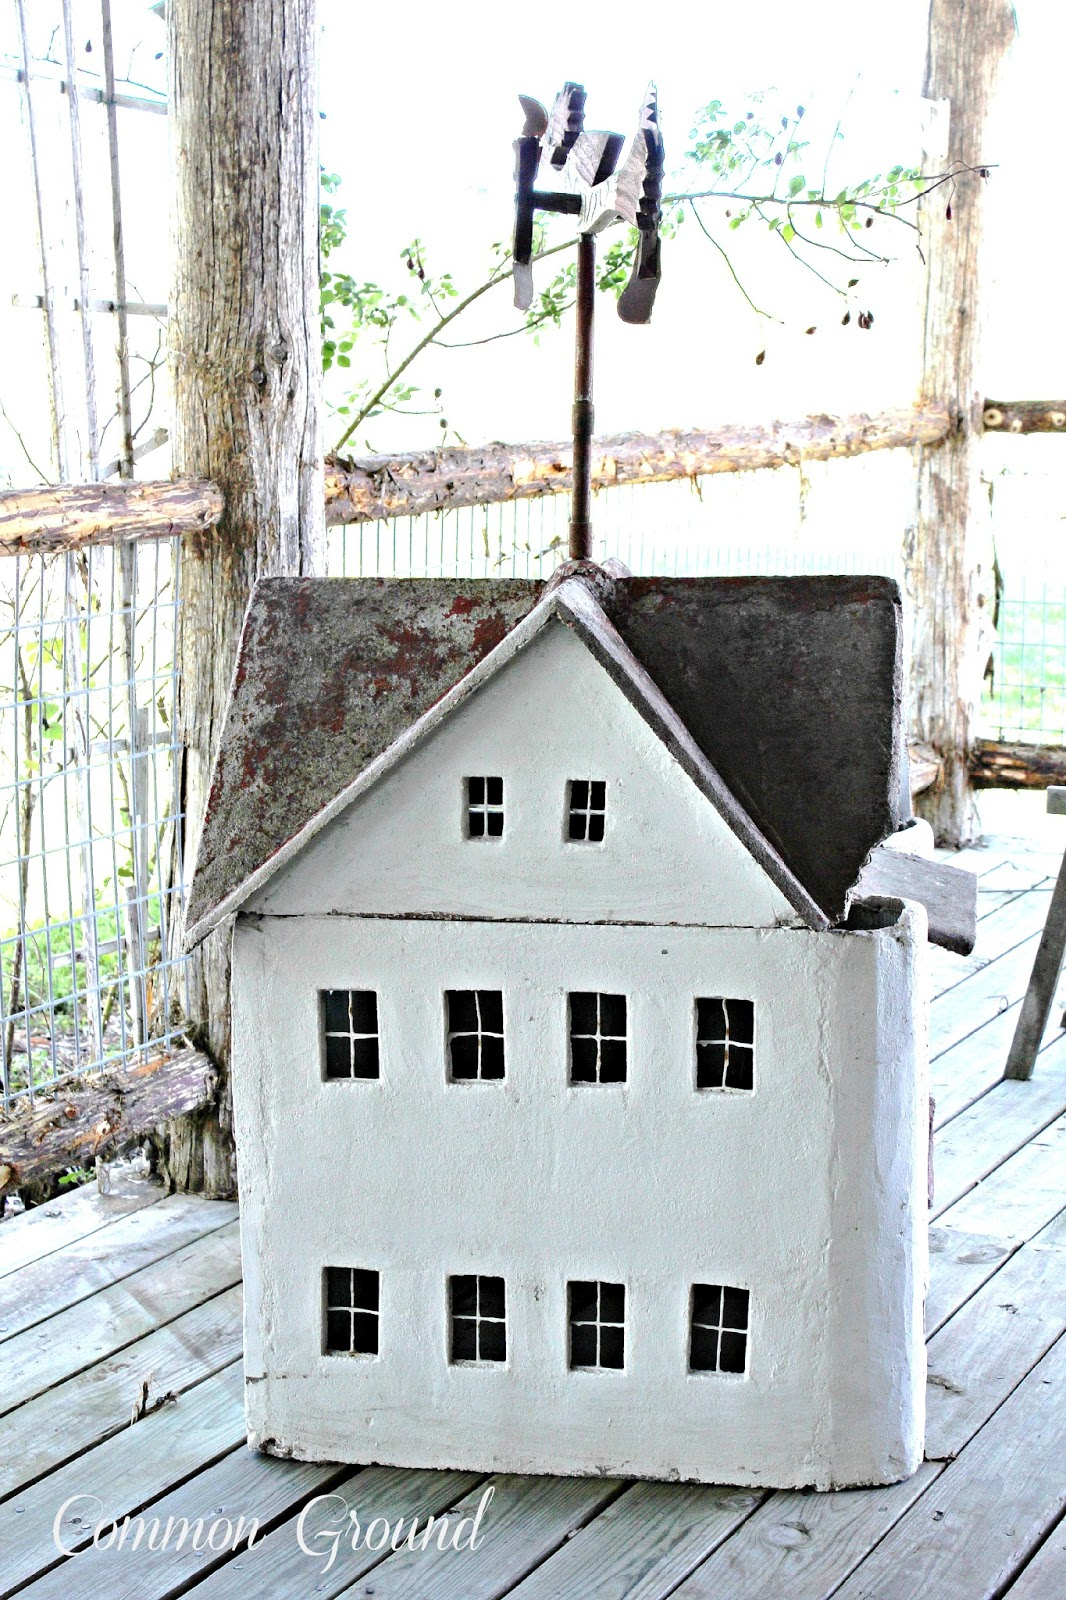 common ground : Repainting a Dollhouse